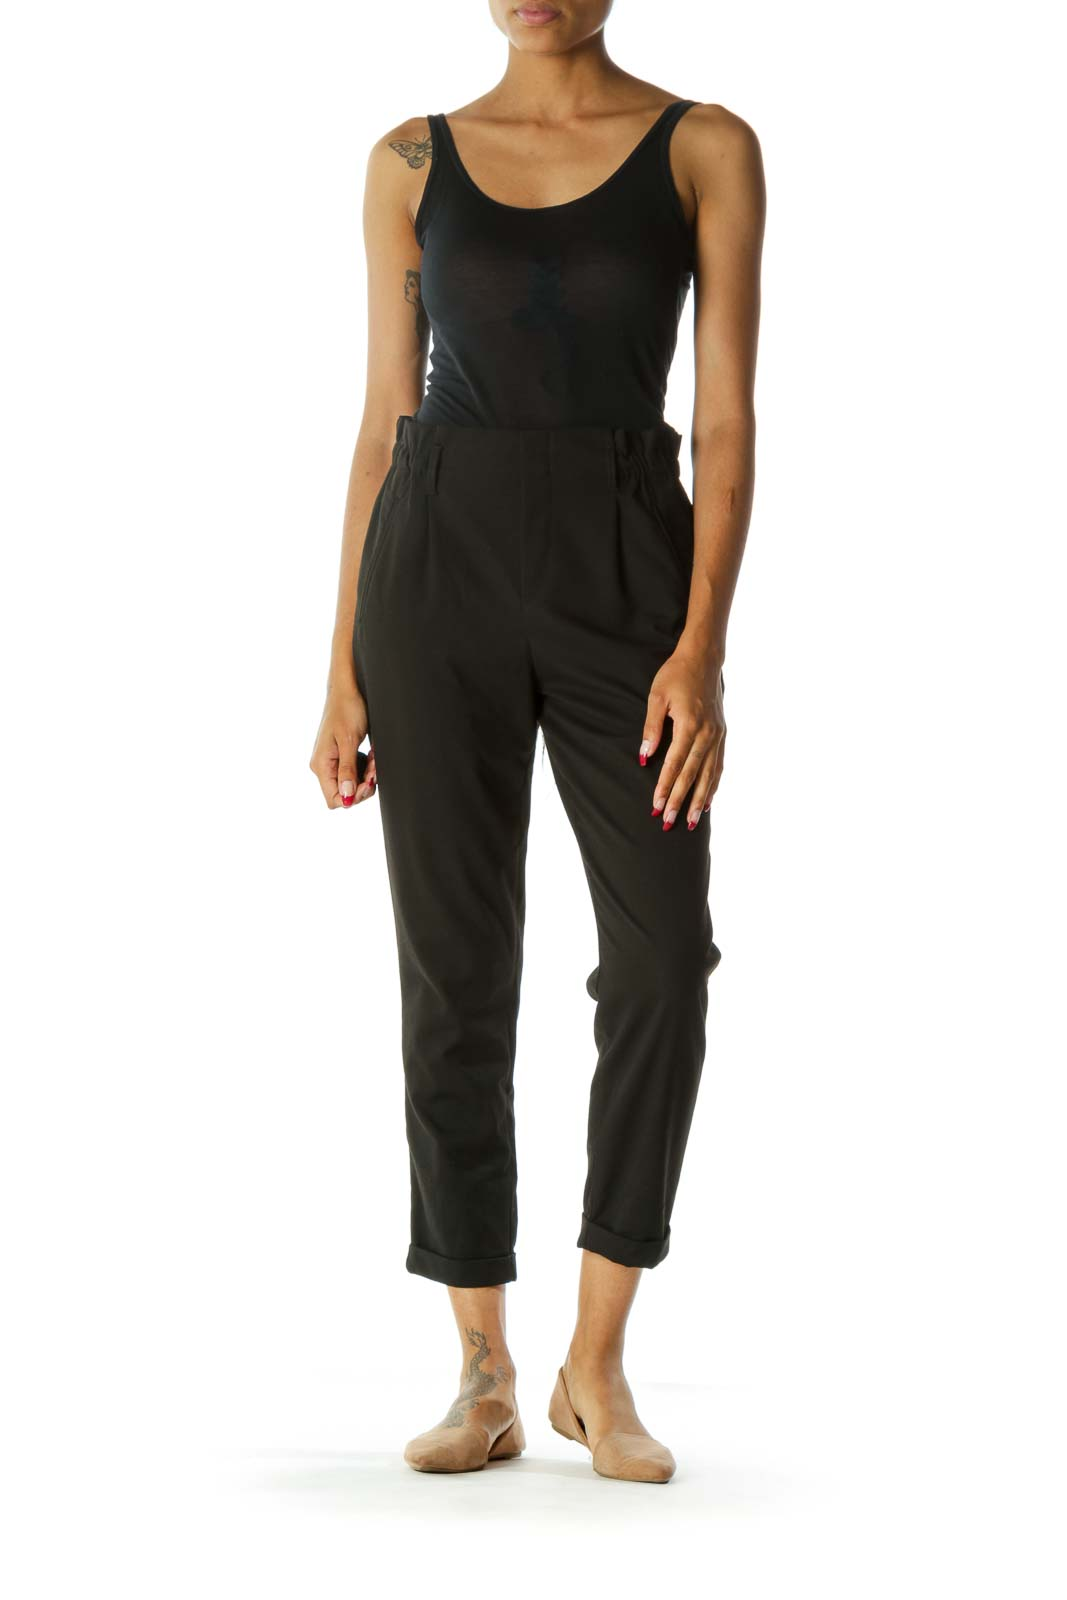 Black High-Waisted Cuffed Tapered Pant w/ Belt Loops